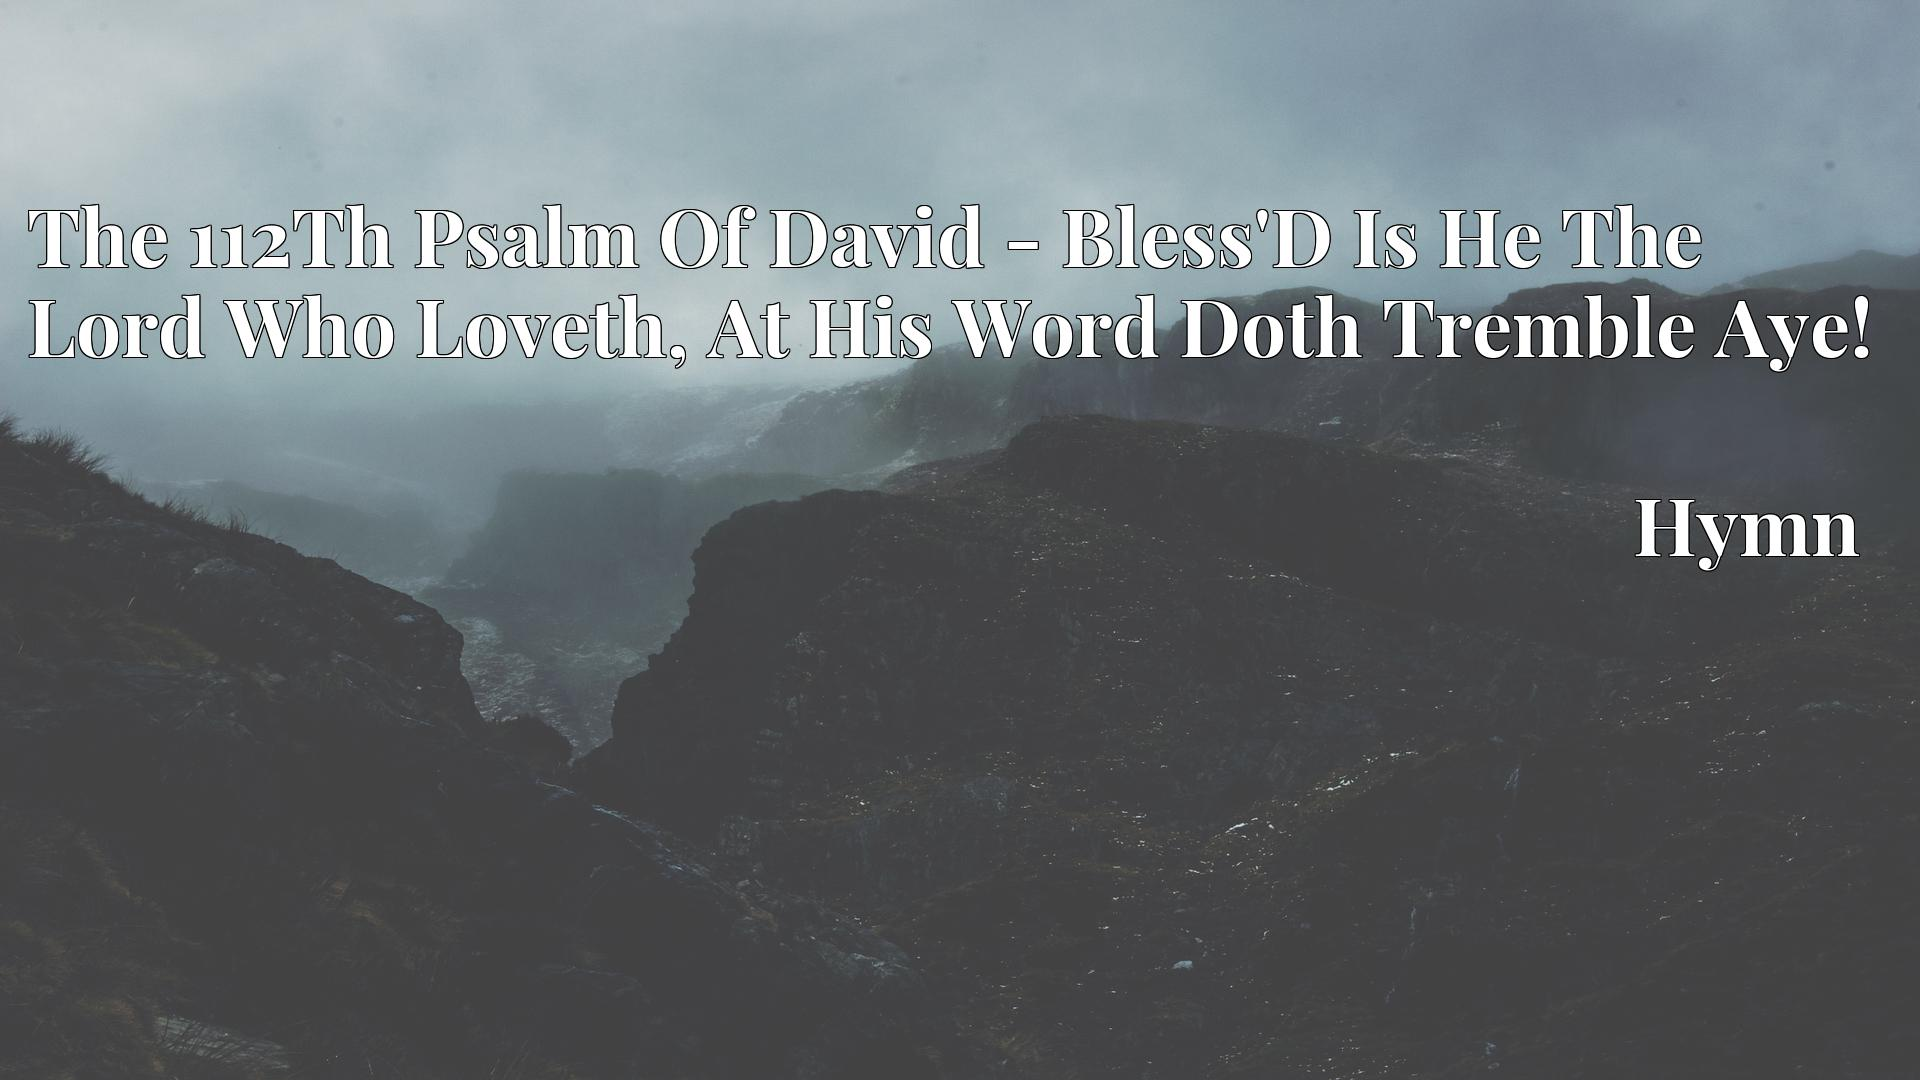 The 112Th Psalm Of David - Bless'D Is He The Lord Who Loveth, At His Word Doth Tremble Aye! - Hymn